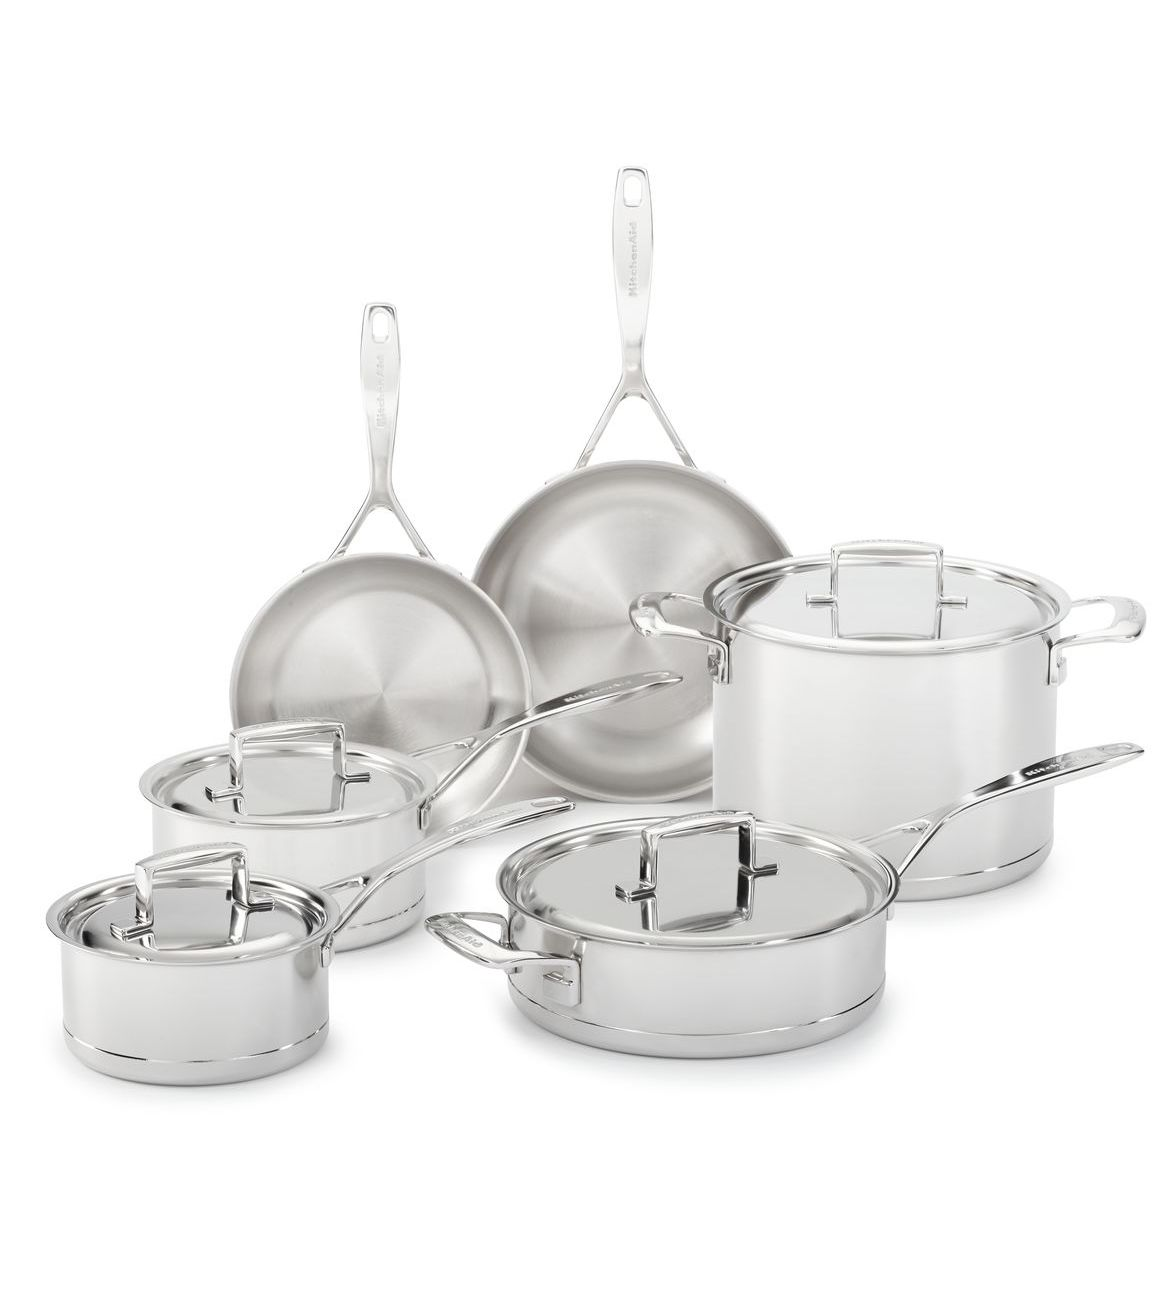 KitchenAid® 7-Ply Stainless Steel with Copper Core 10-Piece Set